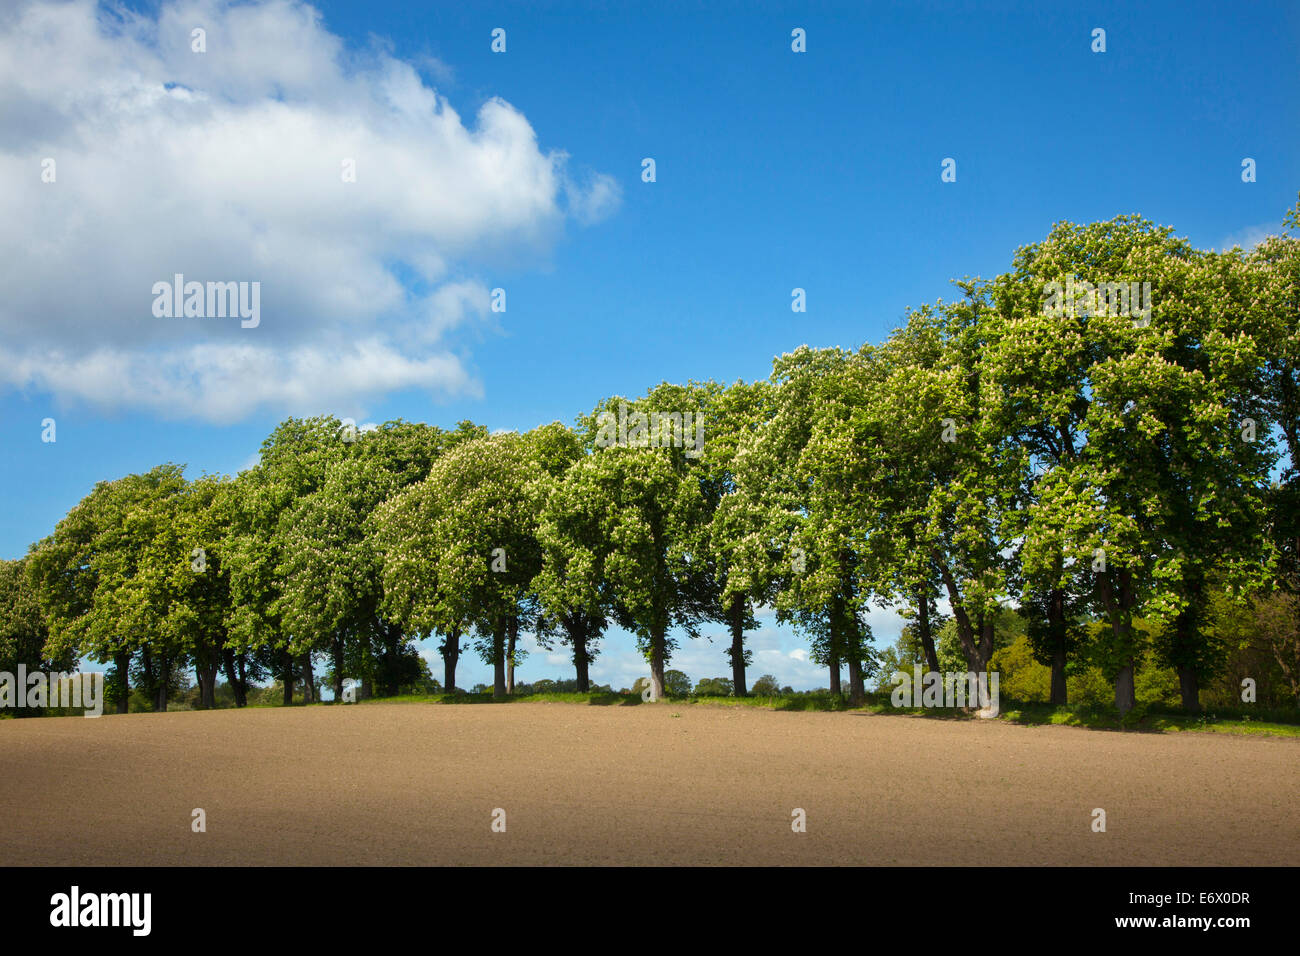 Alley of chestnut trees, Holsteinische Schweiz, Schleswig-Holstein, Germany - Stock Image